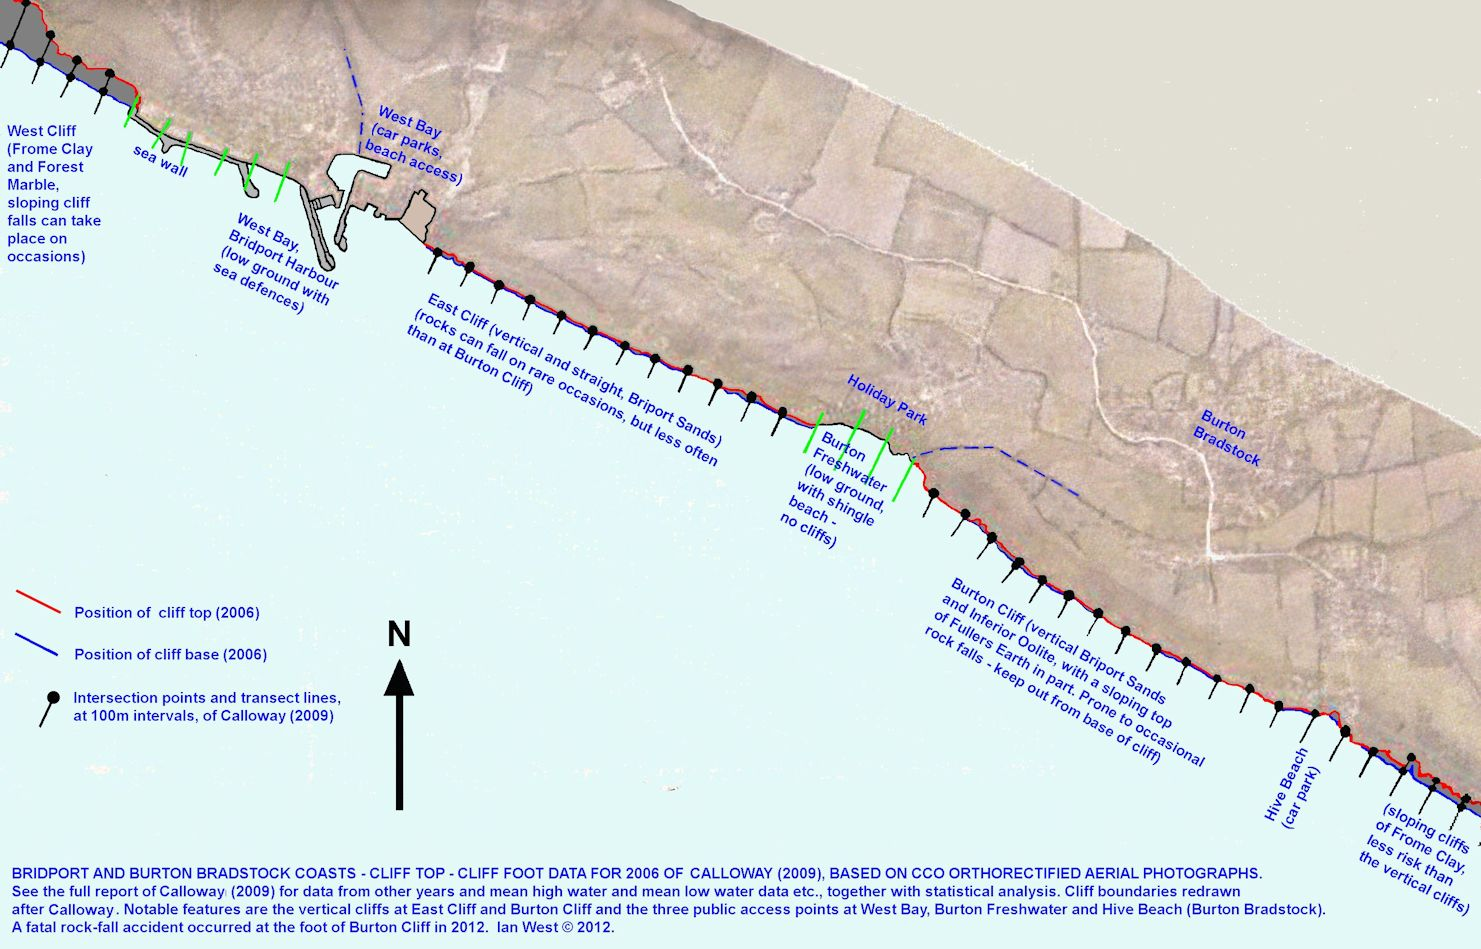 Map showing the occurrrence of vertical cliffs at Bridport and Burton Bradstock, Dorset, 2006, redrawn after Callway (2009)